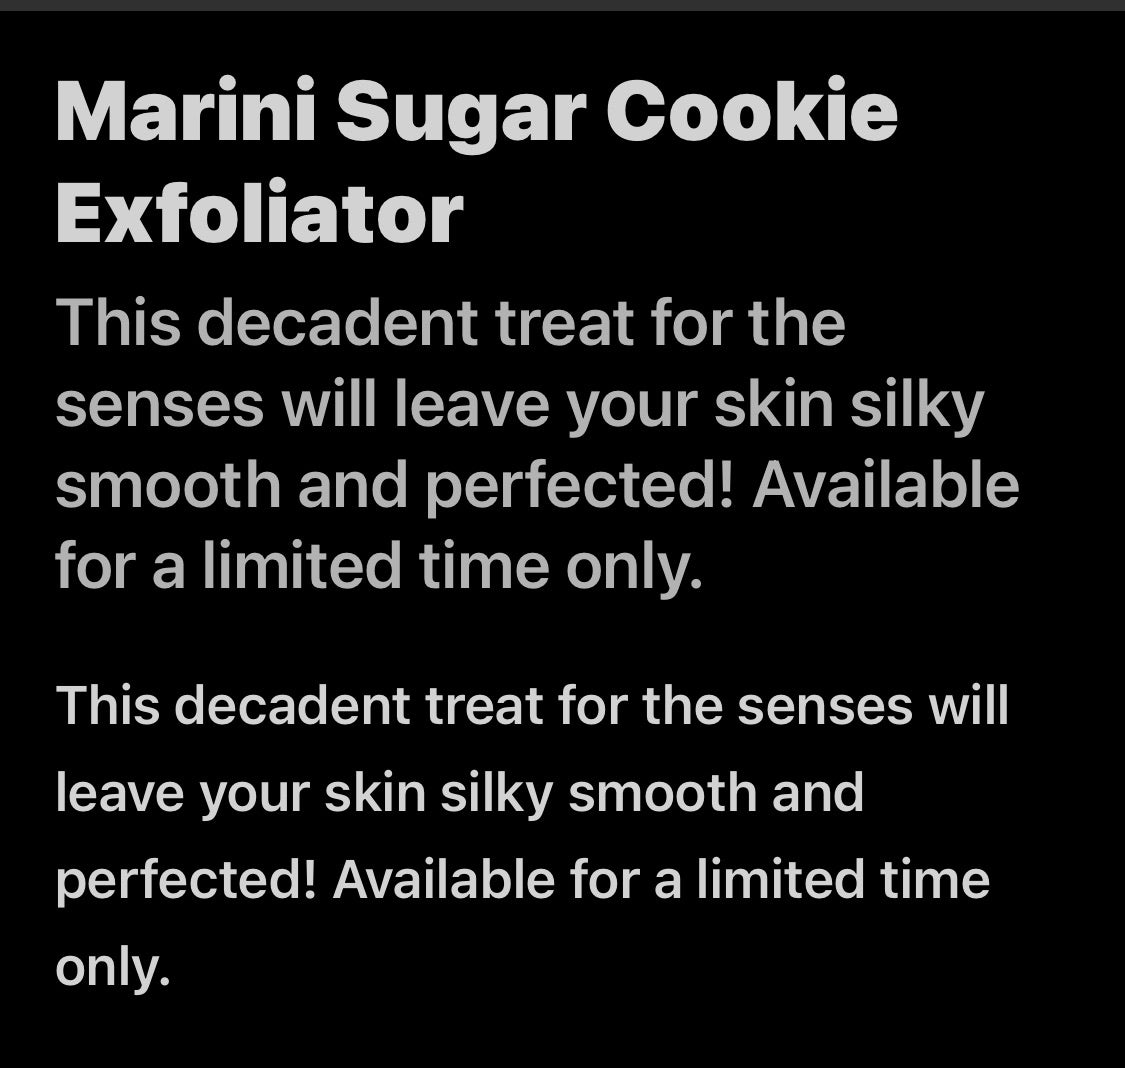 Marini Sugar Cookie Exfoliator